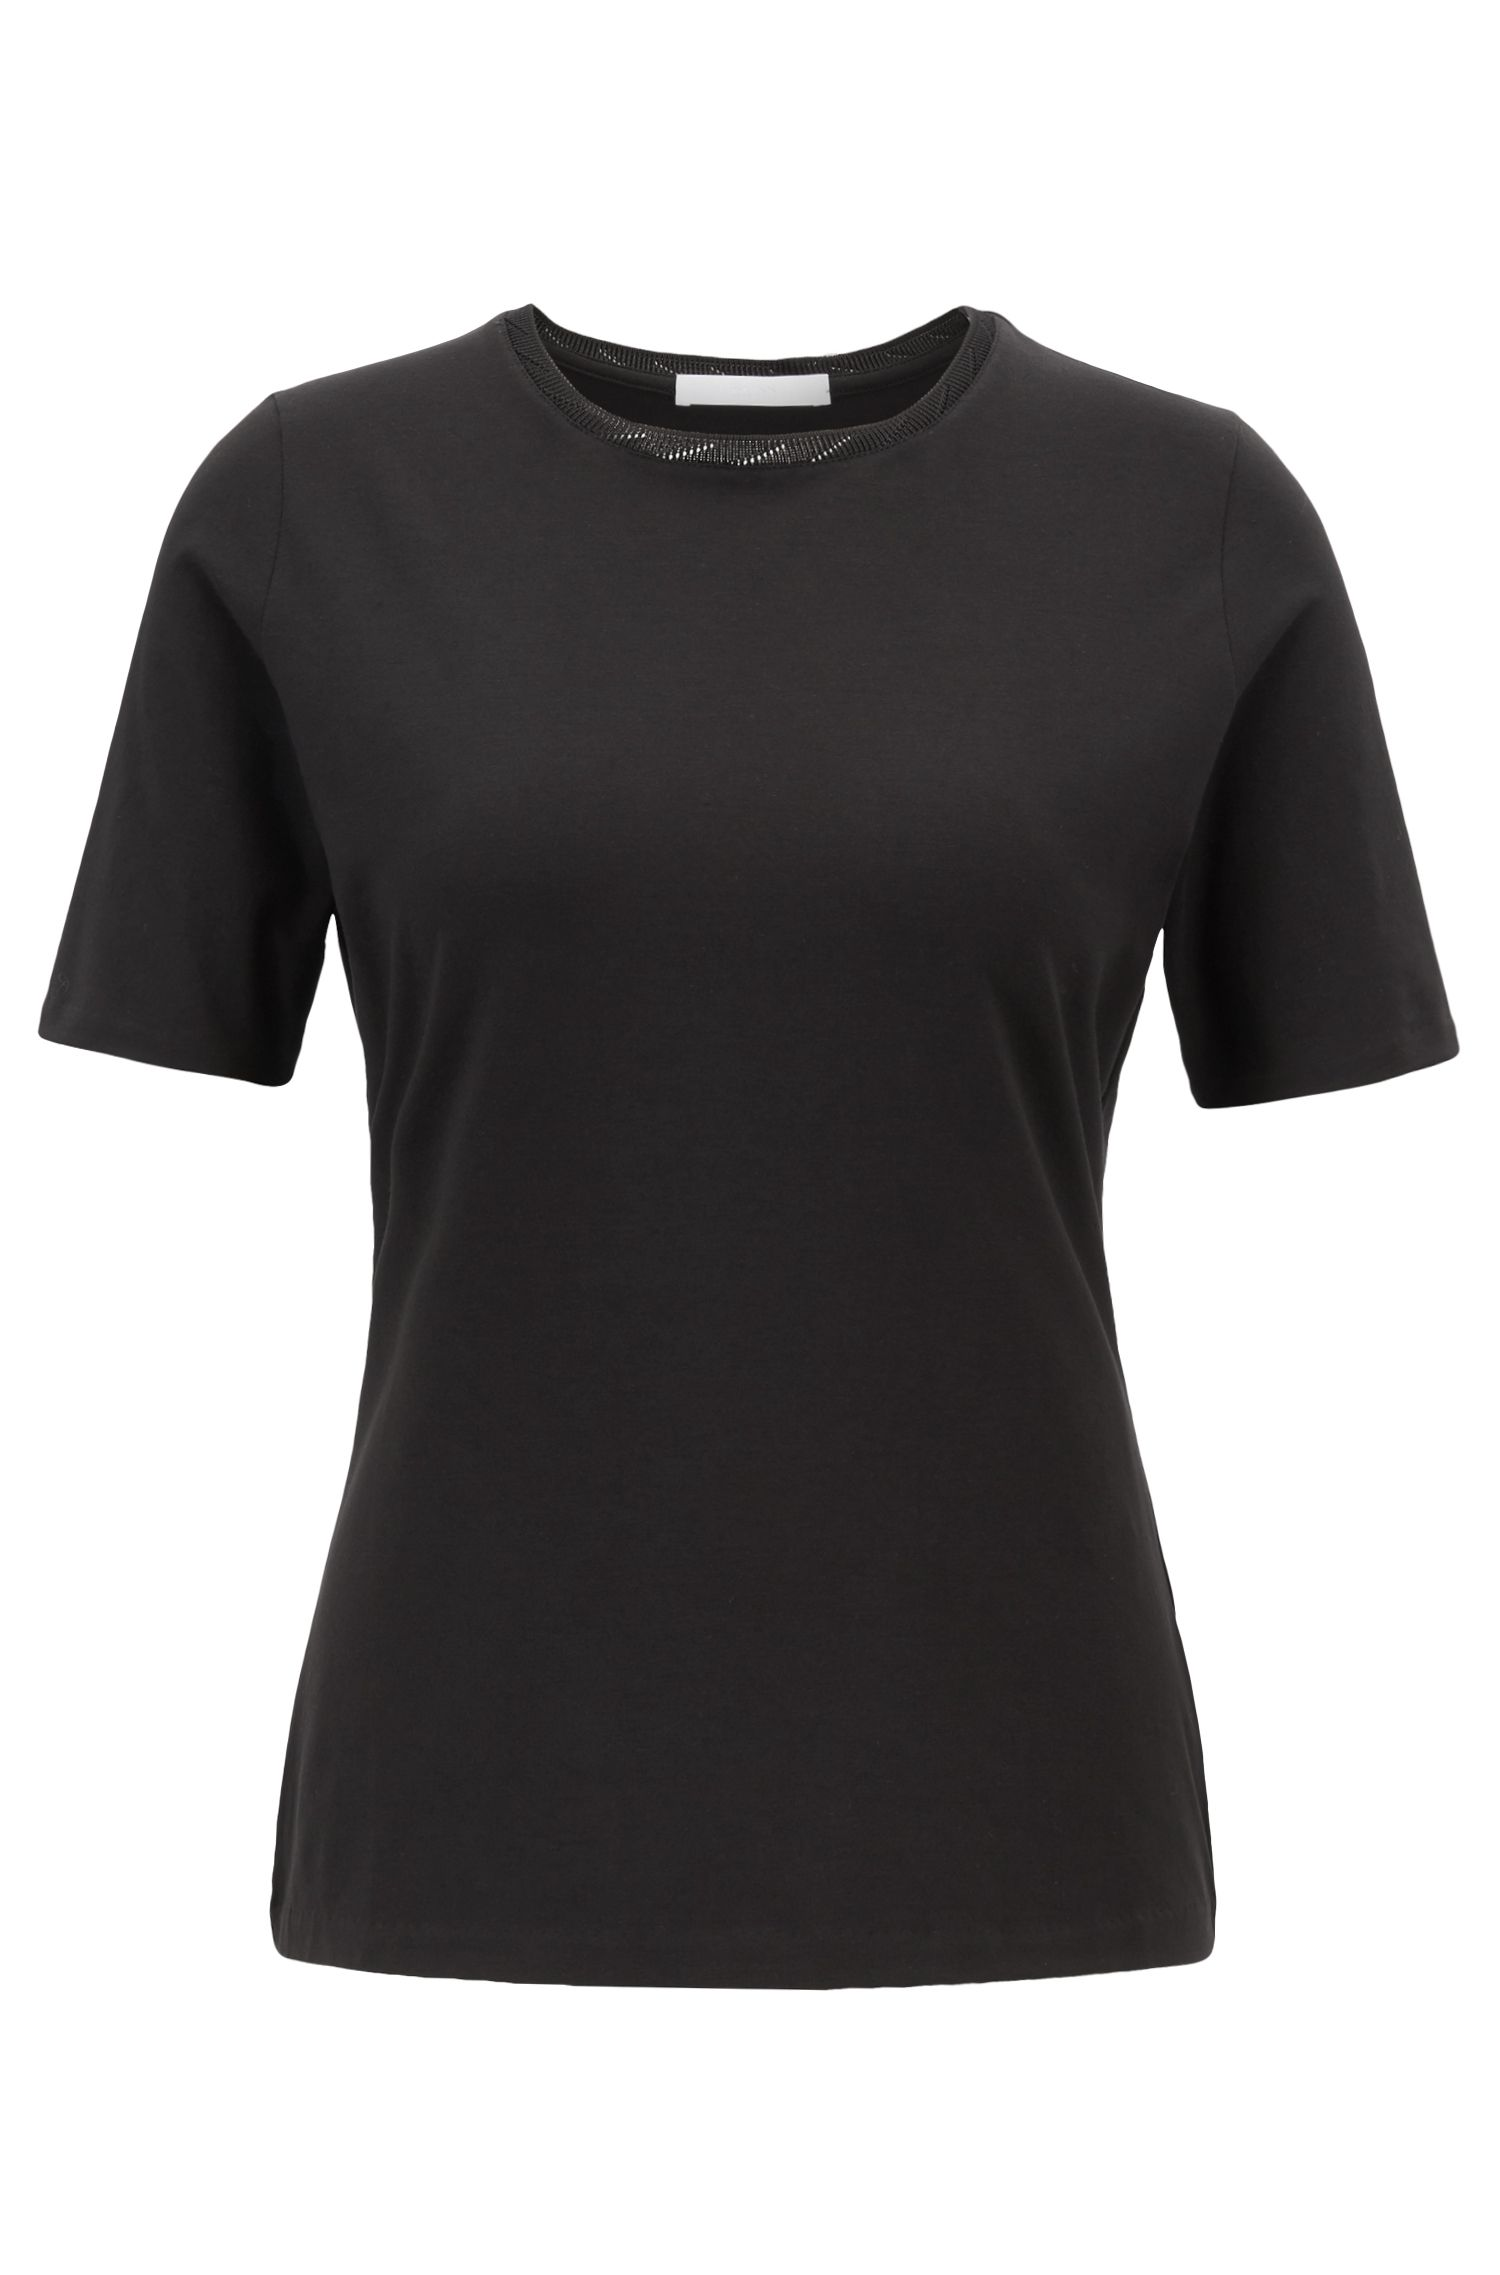 Regular-fit crew-neck top in stretch jersey, Black